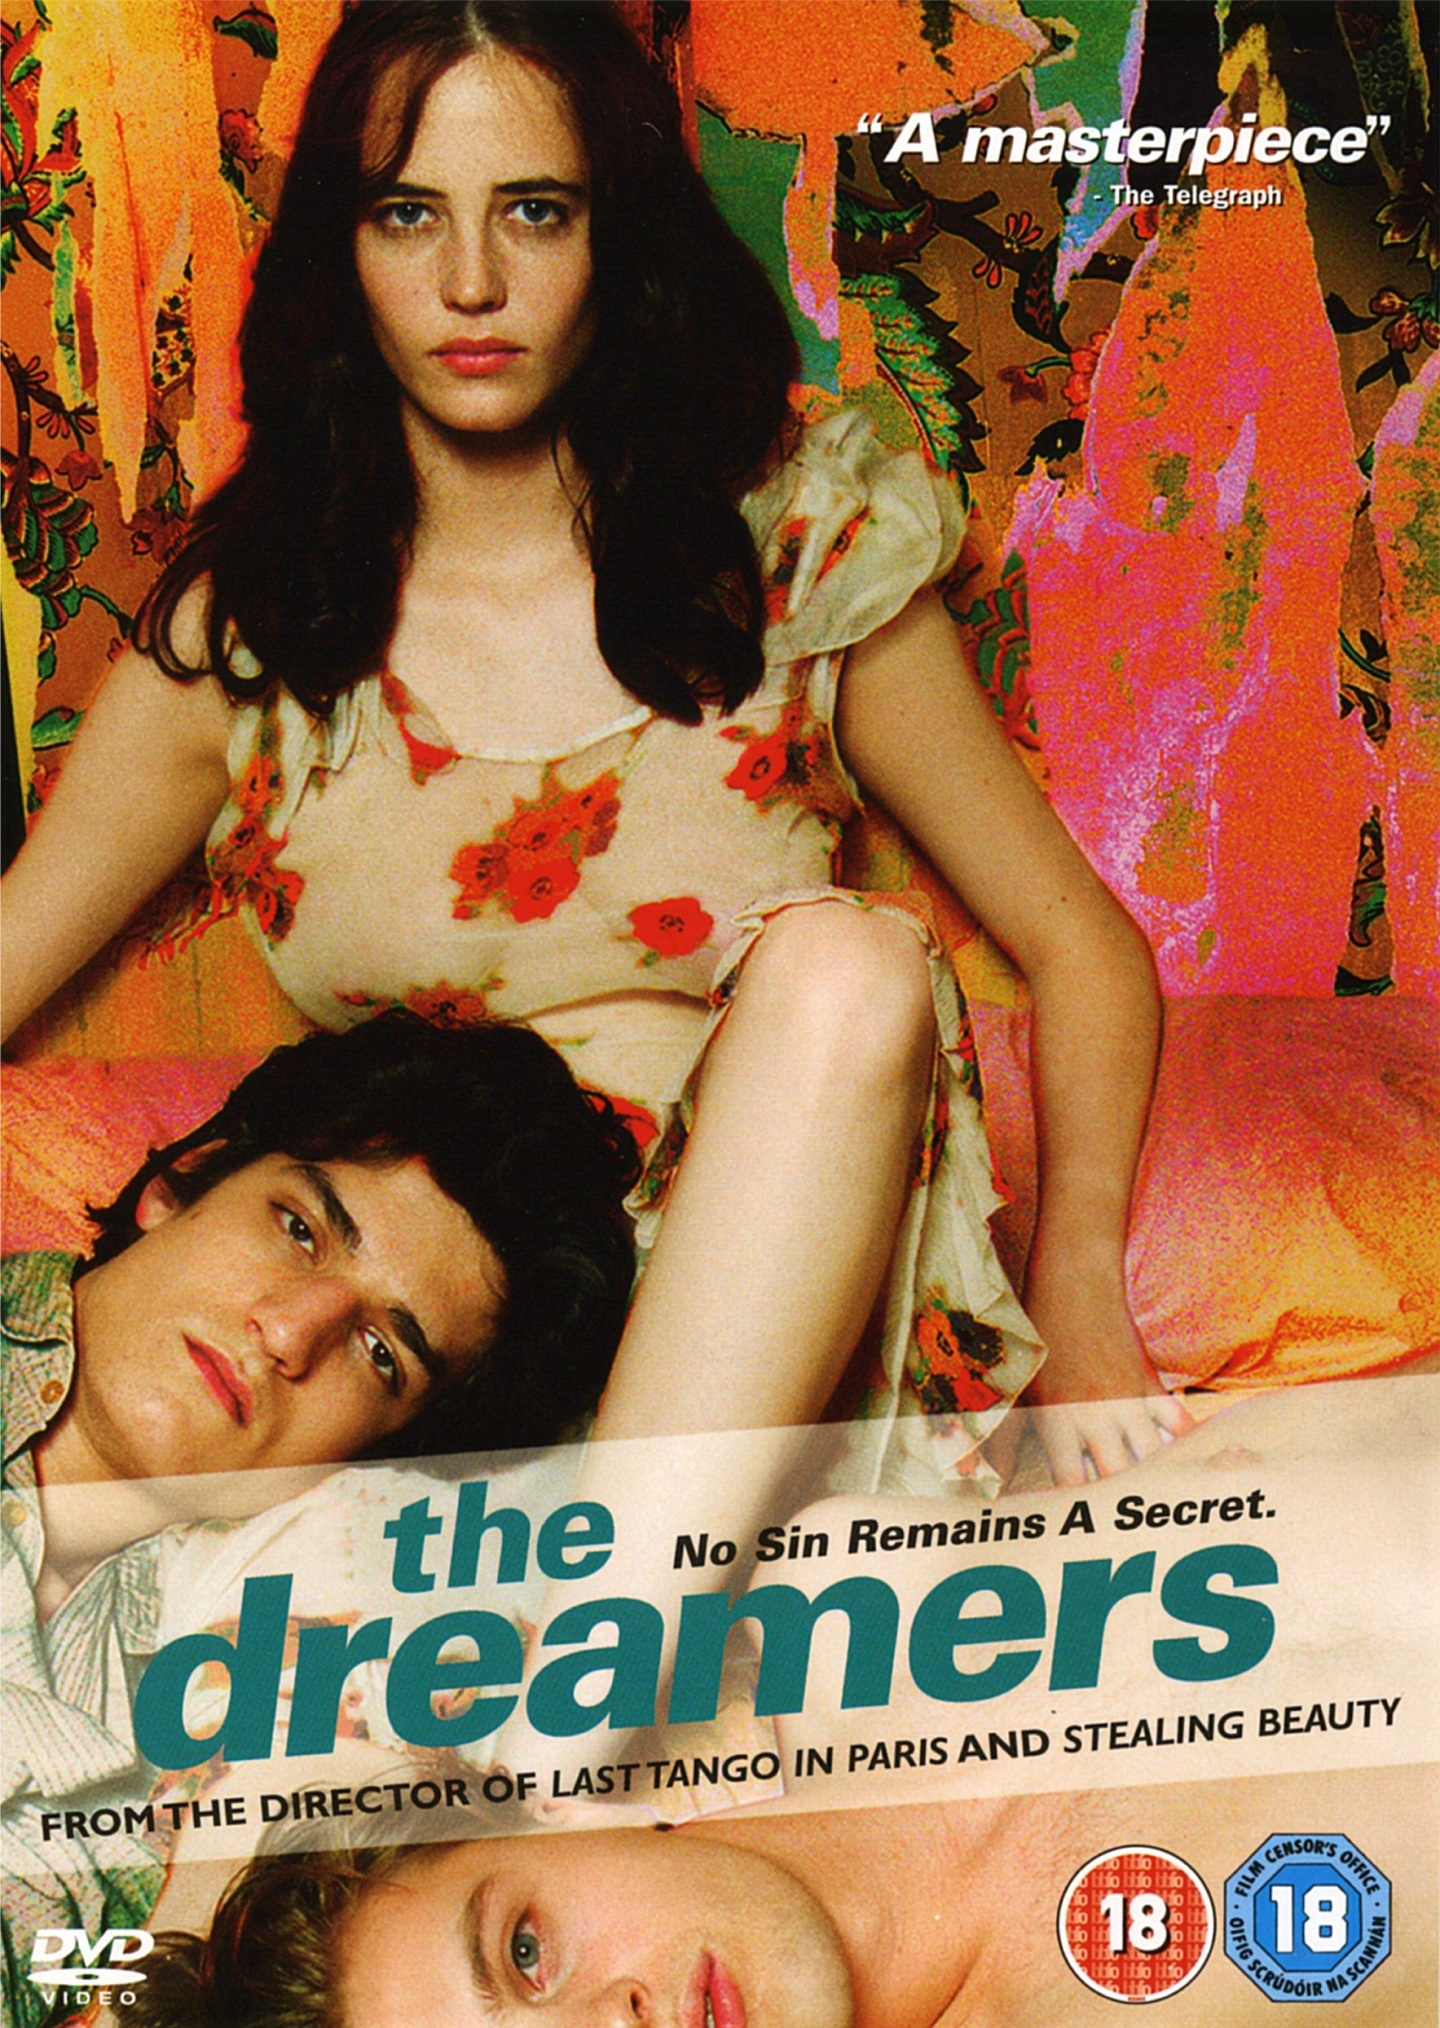 the-dreamers-front-1650120181.jpg